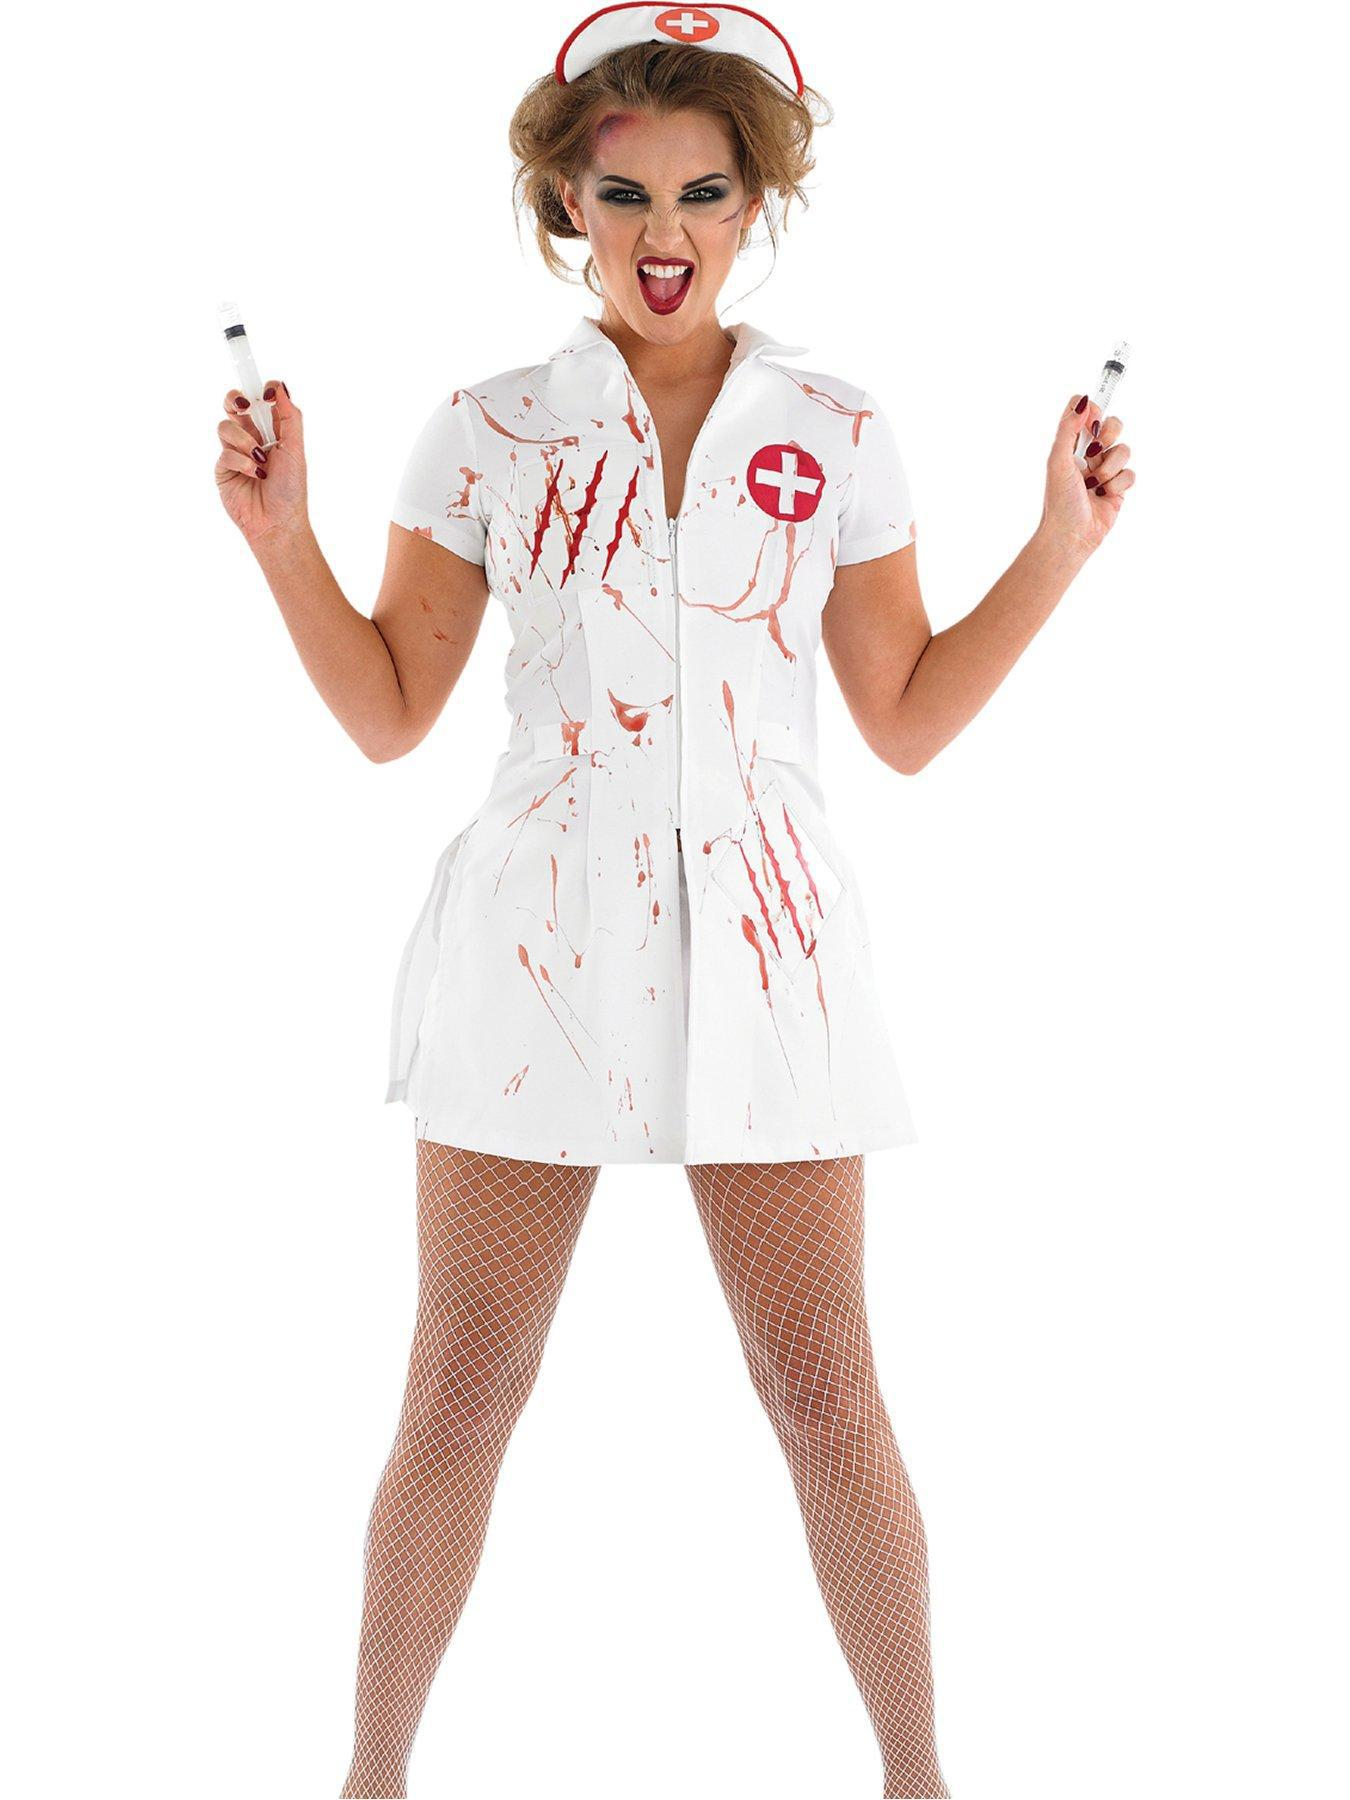 Halloween costume, adult women, cosplay, zombie nurses, vampires, women nurses, night clubs, costumes